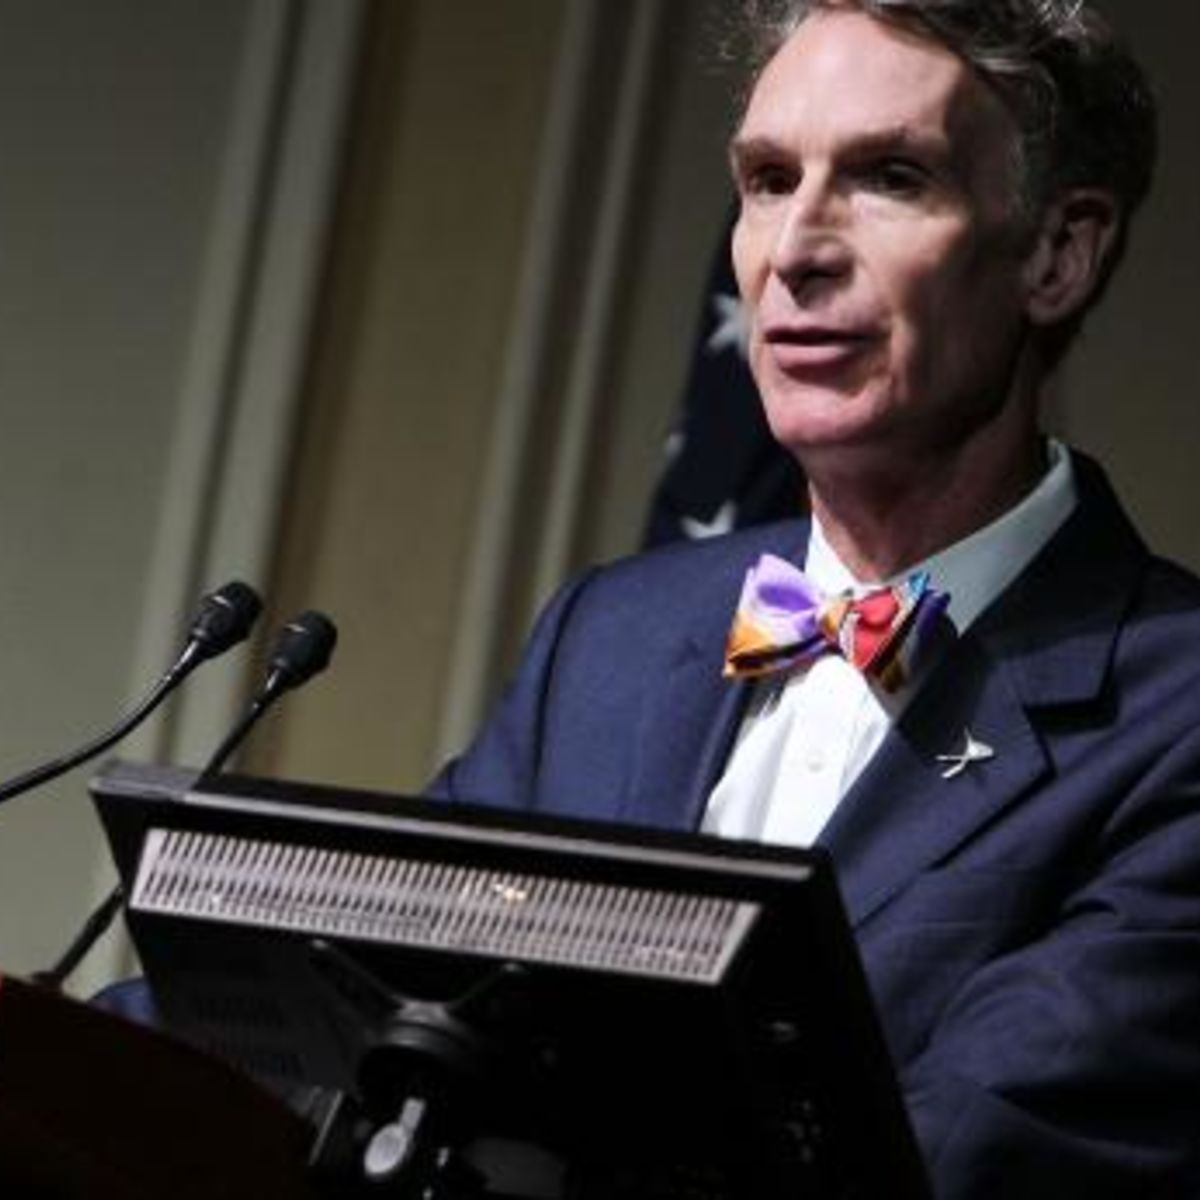 187770474-bill-nye-makes-a-few-remarks-at-a-celebration-of-carl.jpg.CROP.rectangle-large.jpg